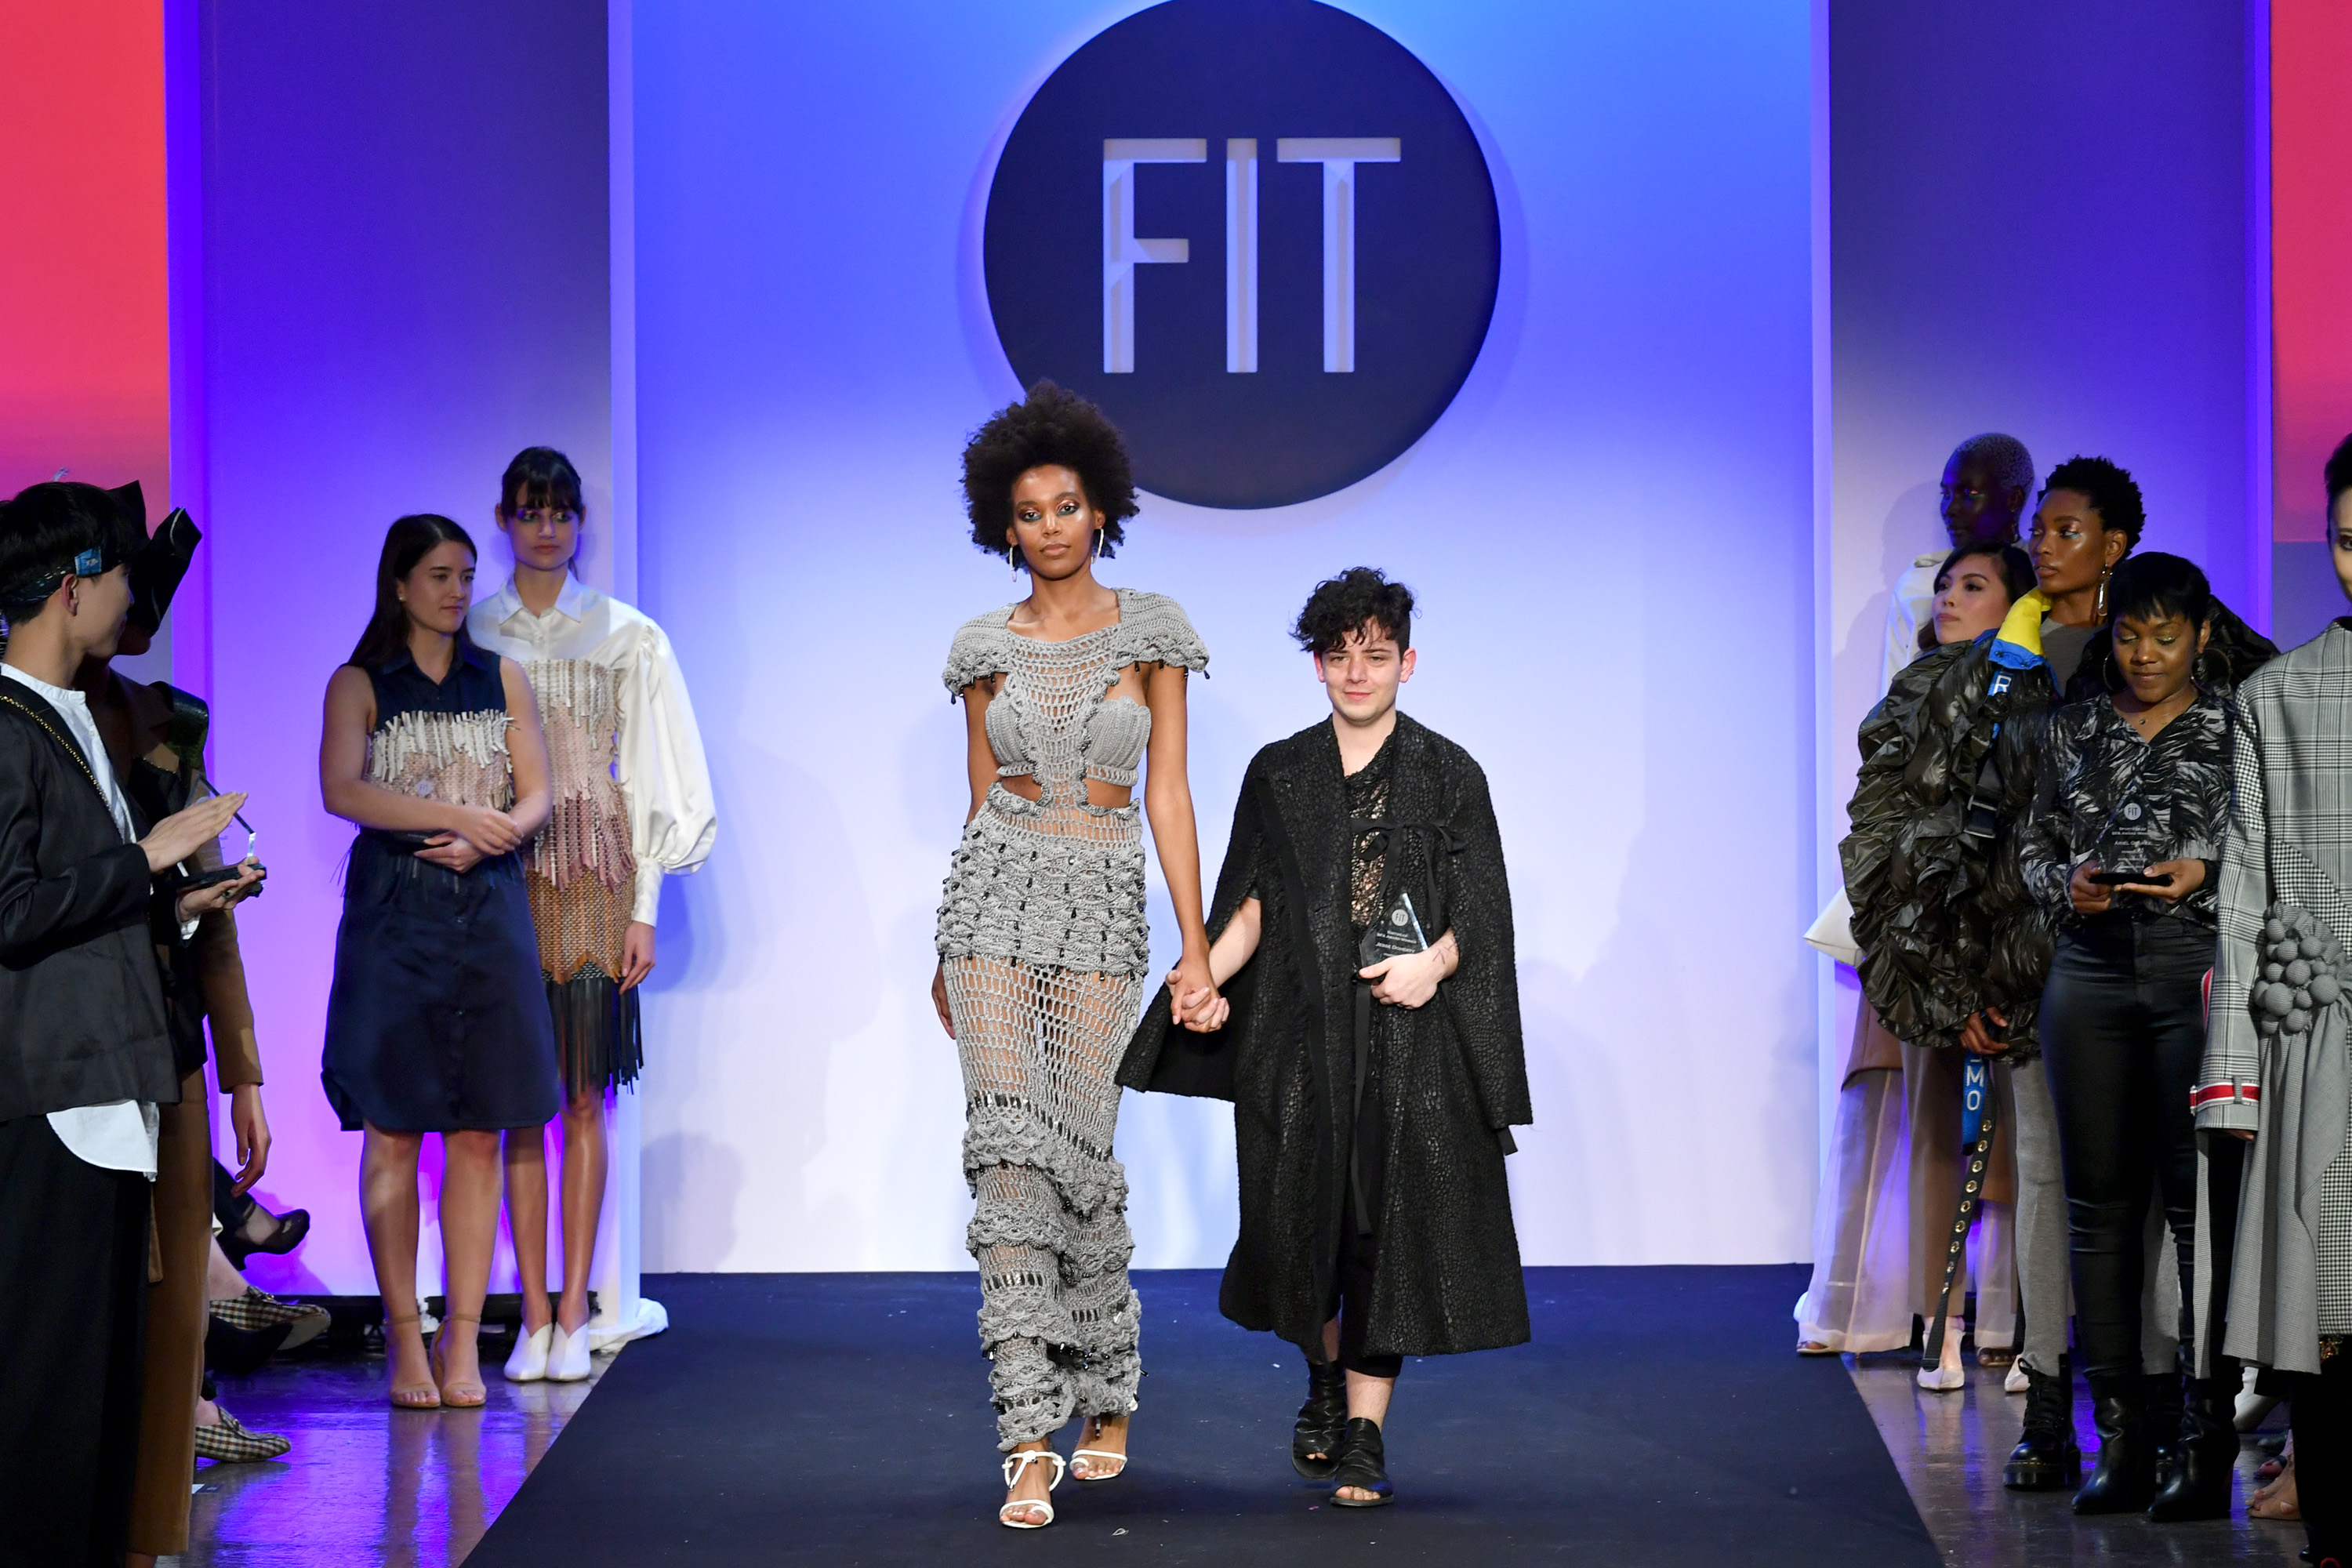 2019 Future Of Fashion Runway Show At The Fashion Institute Of Technology